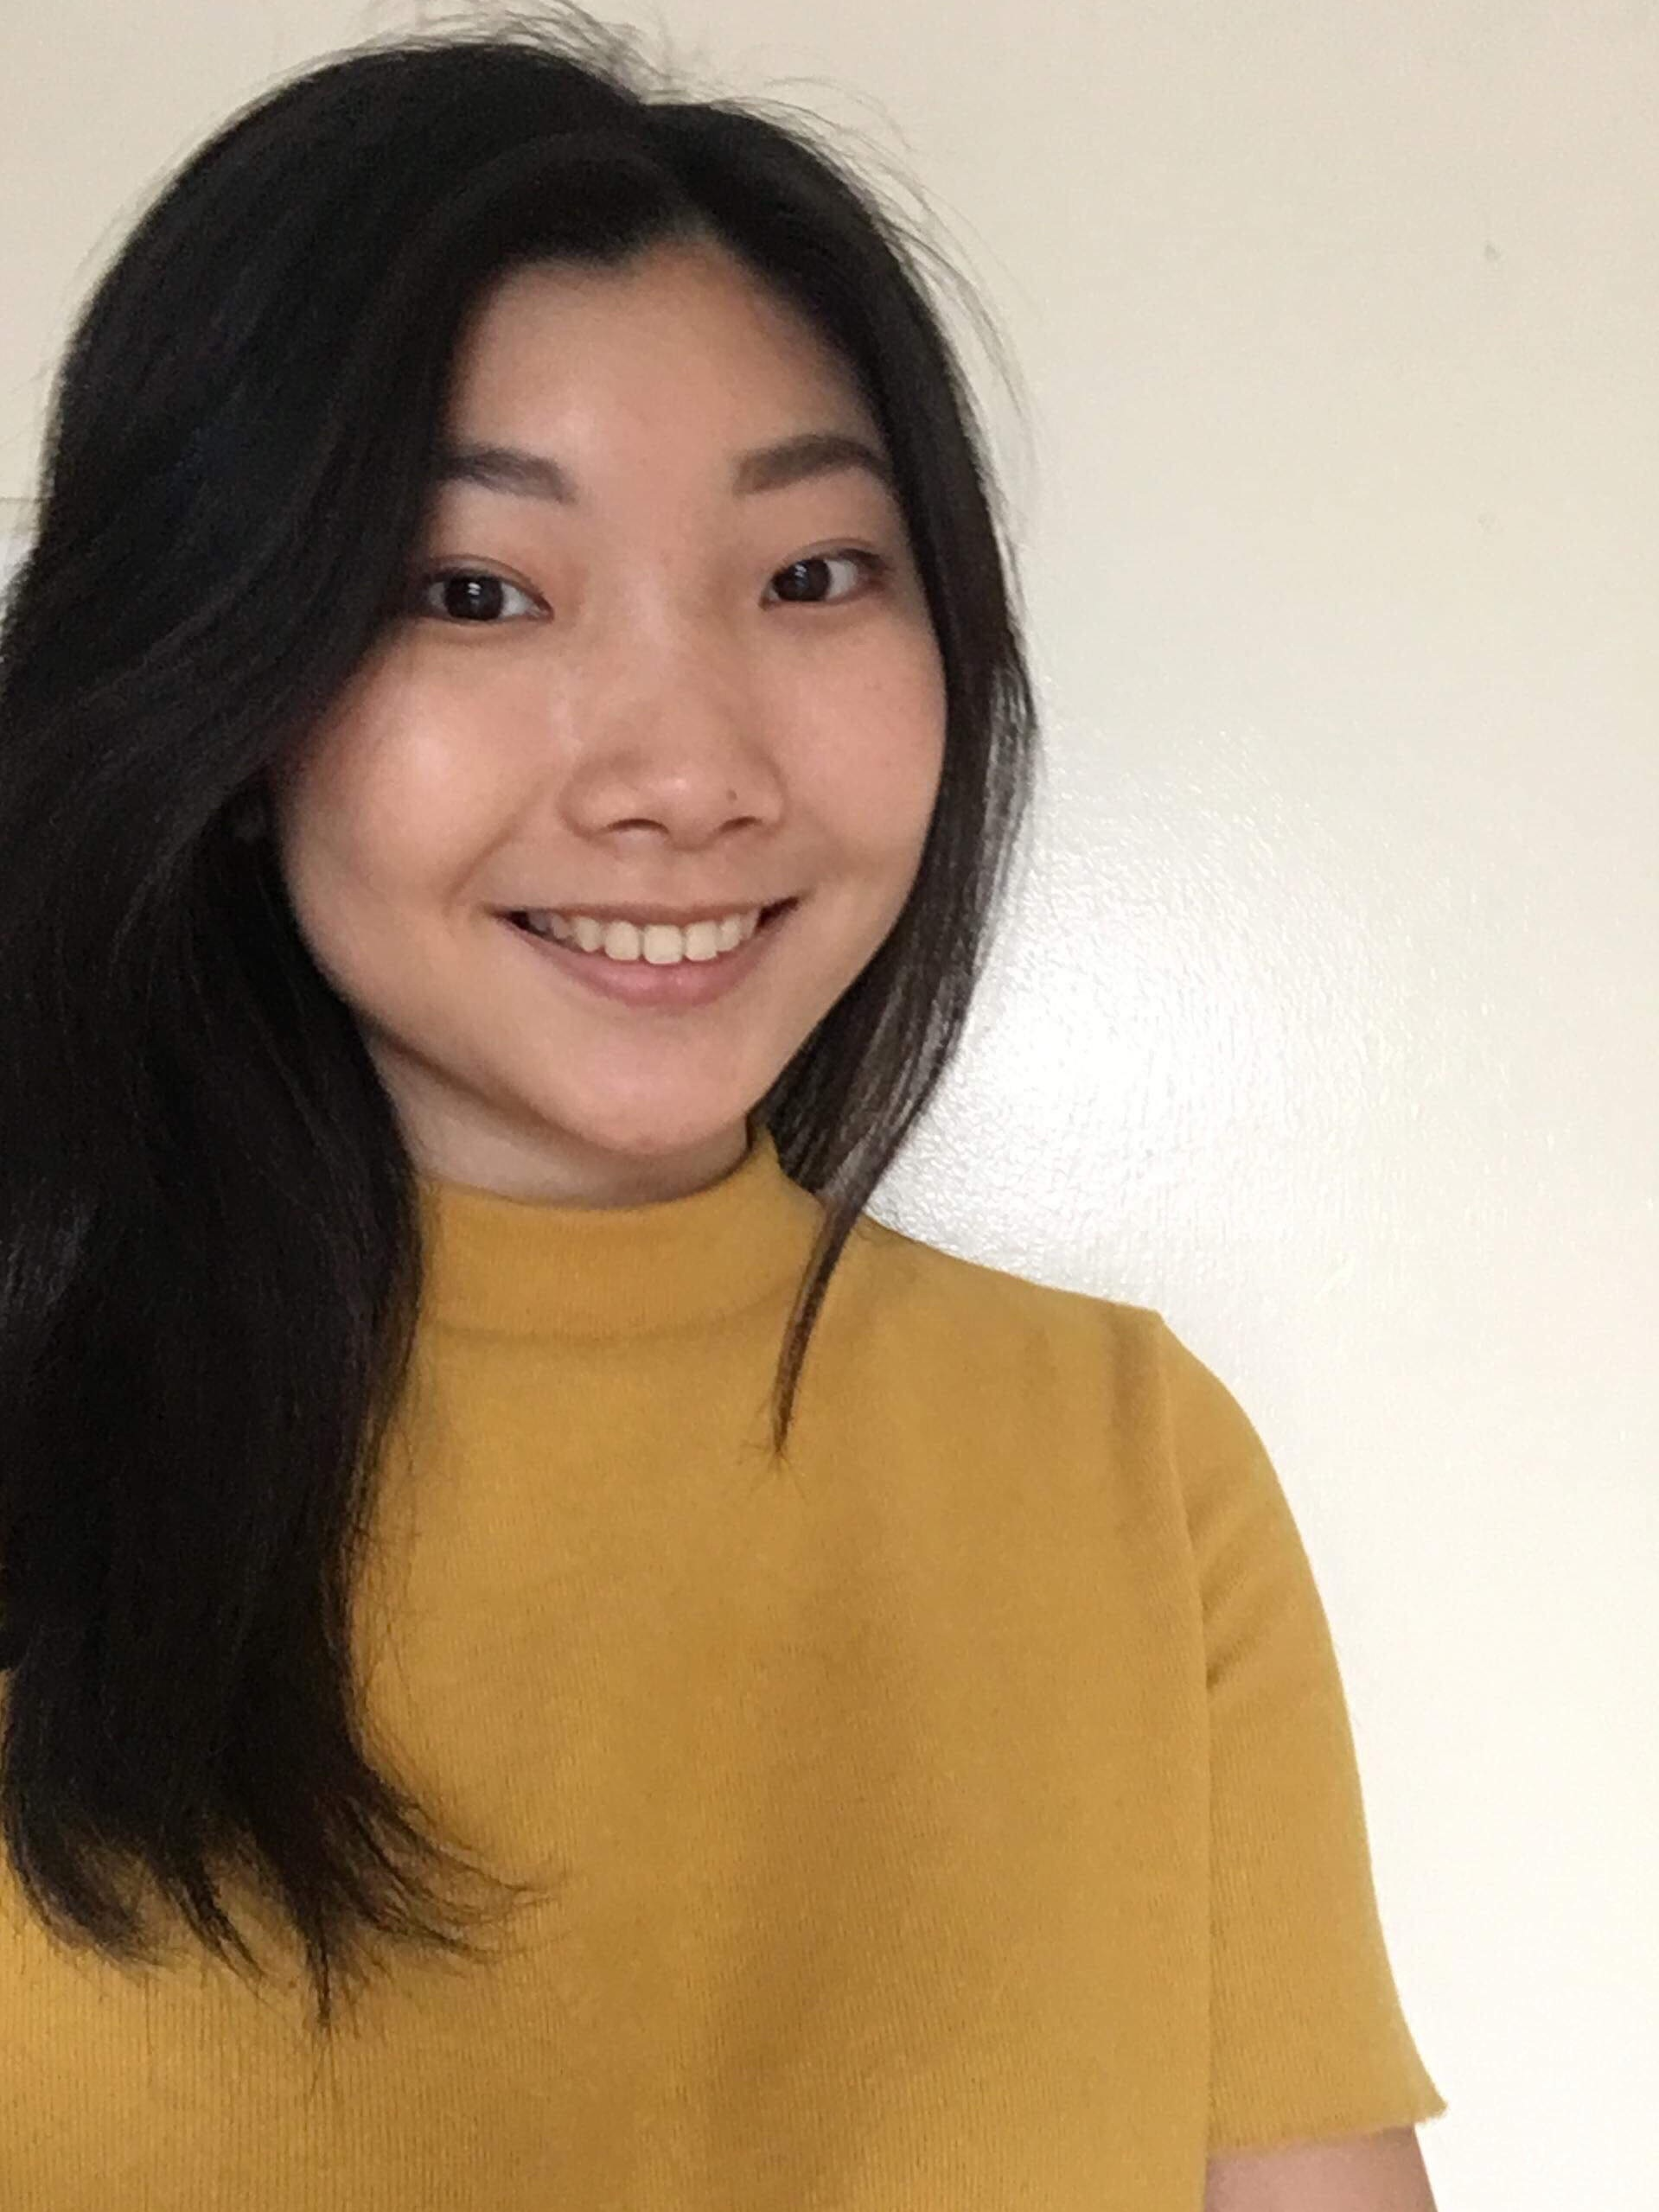 Shelley Zhang Director of Finance - Major & Year: Finance, U2Hometown: St. Catharines, ONWhat is your favorite city and why?New York because it is a city that's constantly changing. I fell in love with the city when I first visited due to its liveliness and the fact that there was just so much to do. There were so many different types of cuisines offered within the city and a variety of shops all around.What's on your bucket list?I hope that I will have the chance to travel to more parts in Asia such as Japan, South Korea, China, Singapore and Thailand and to explore the different types of cuisines that are offered there as well as experience new and diverse cultures.Where do you see yourself in 5 years?In 5 years, I hope to be working in another country doing something that I love and am passionate about.